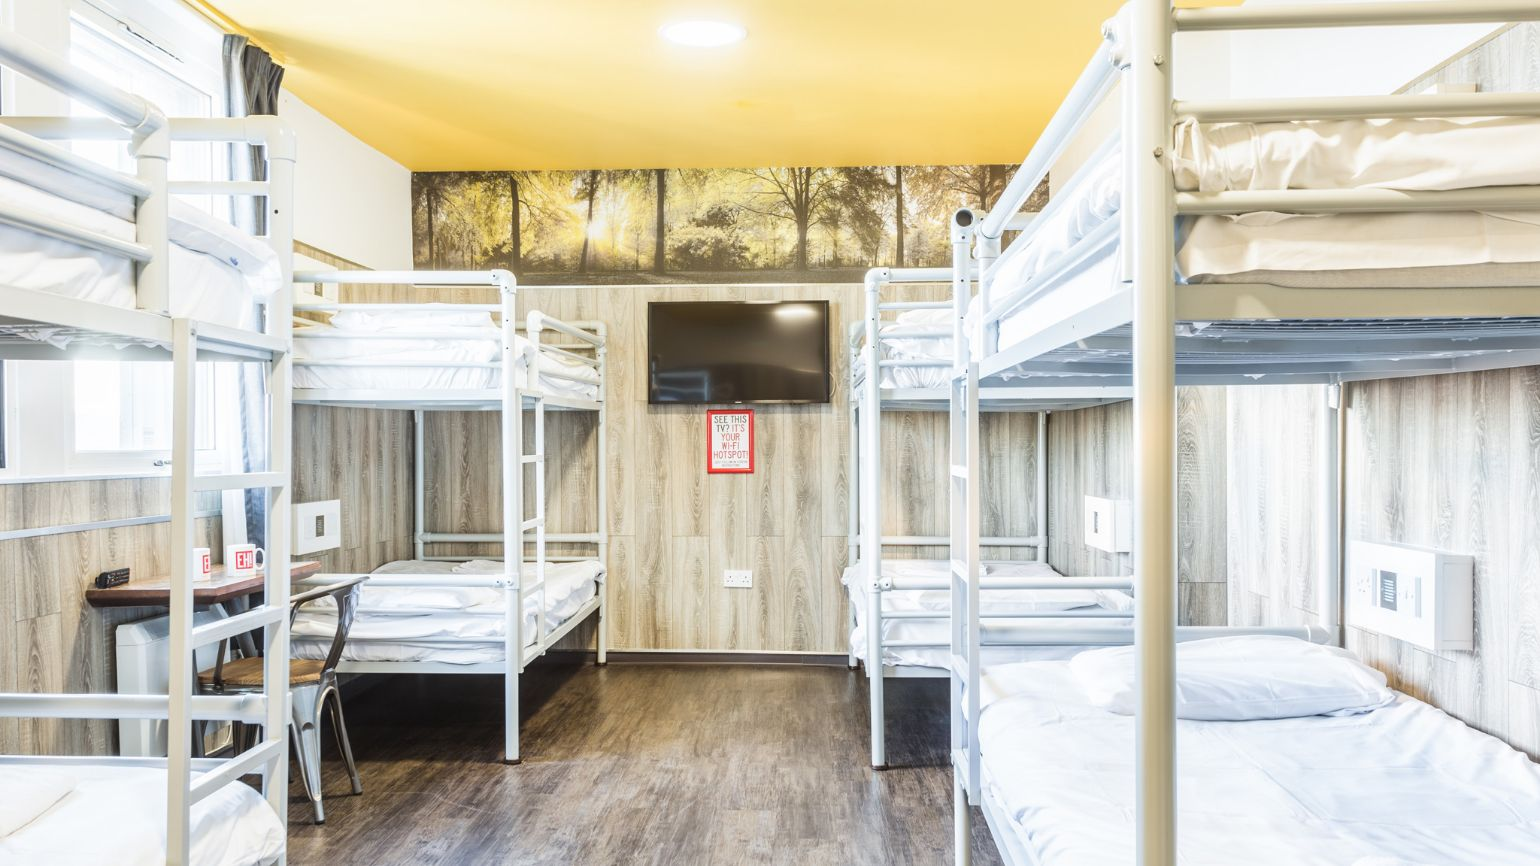 Accommodation at Euro Hostel